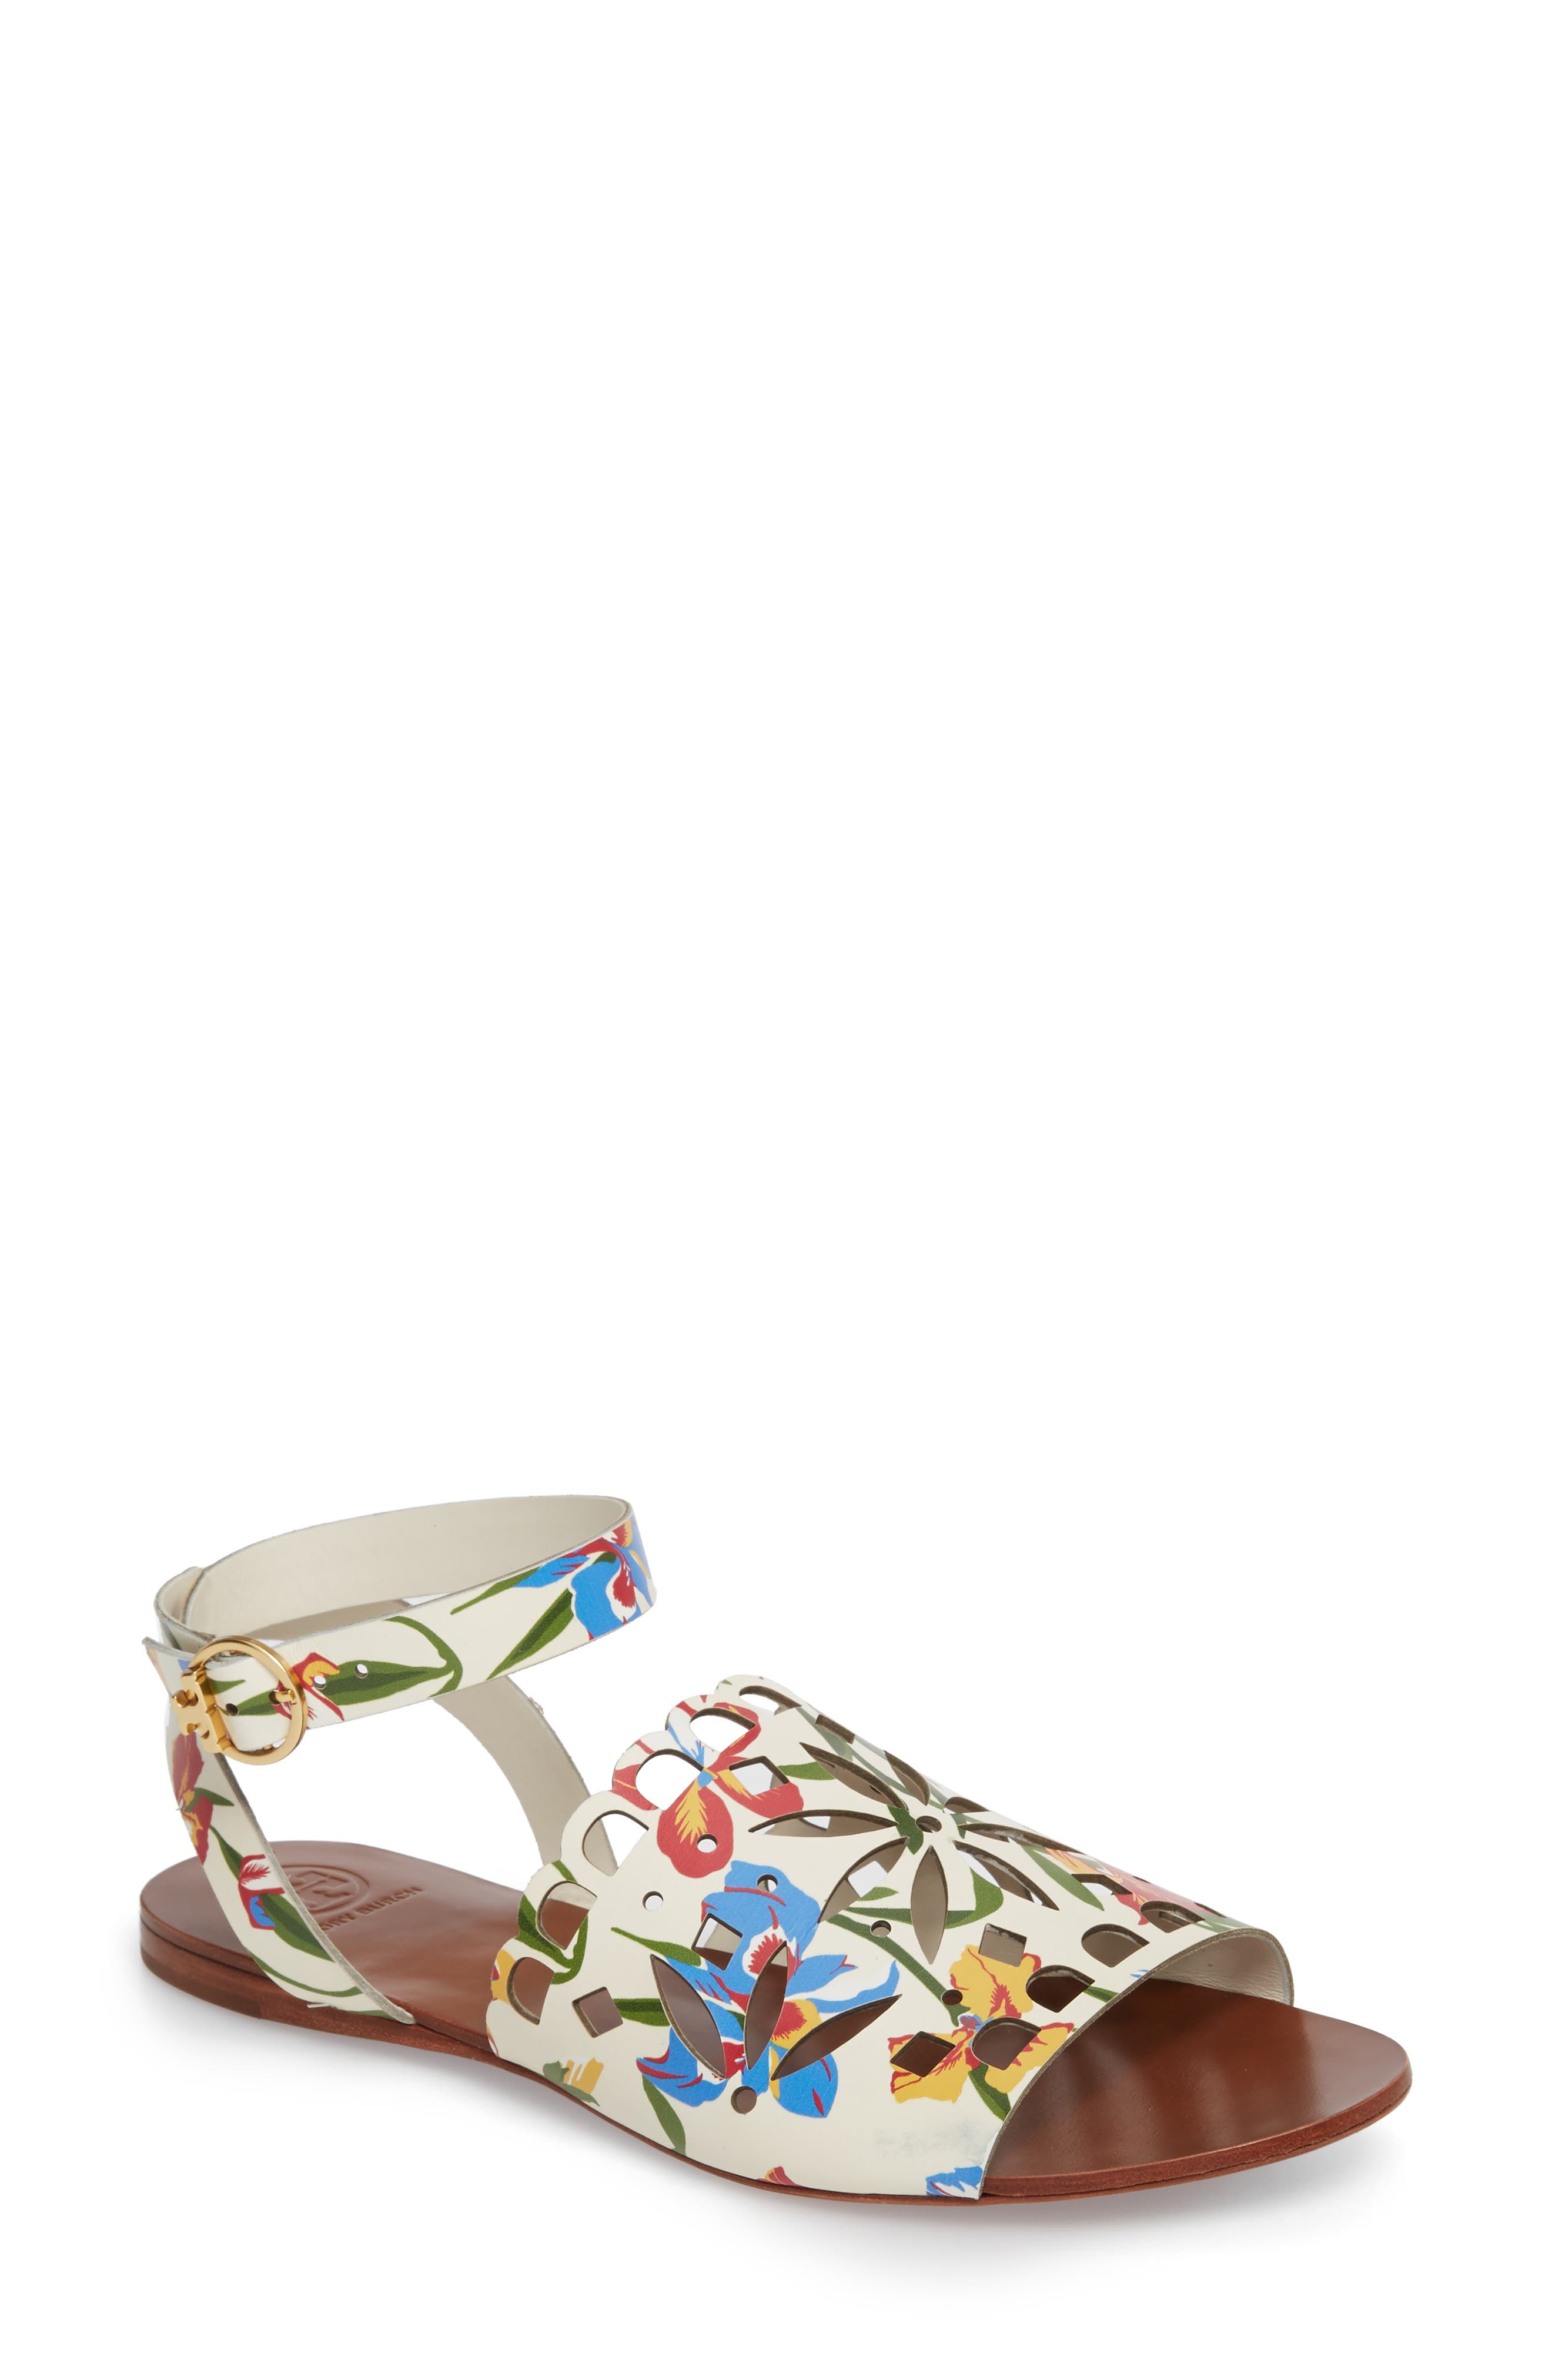 May Printed Floral Ankle Strap Sandal,                             Main thumbnail 1, color,                             Painted Iris